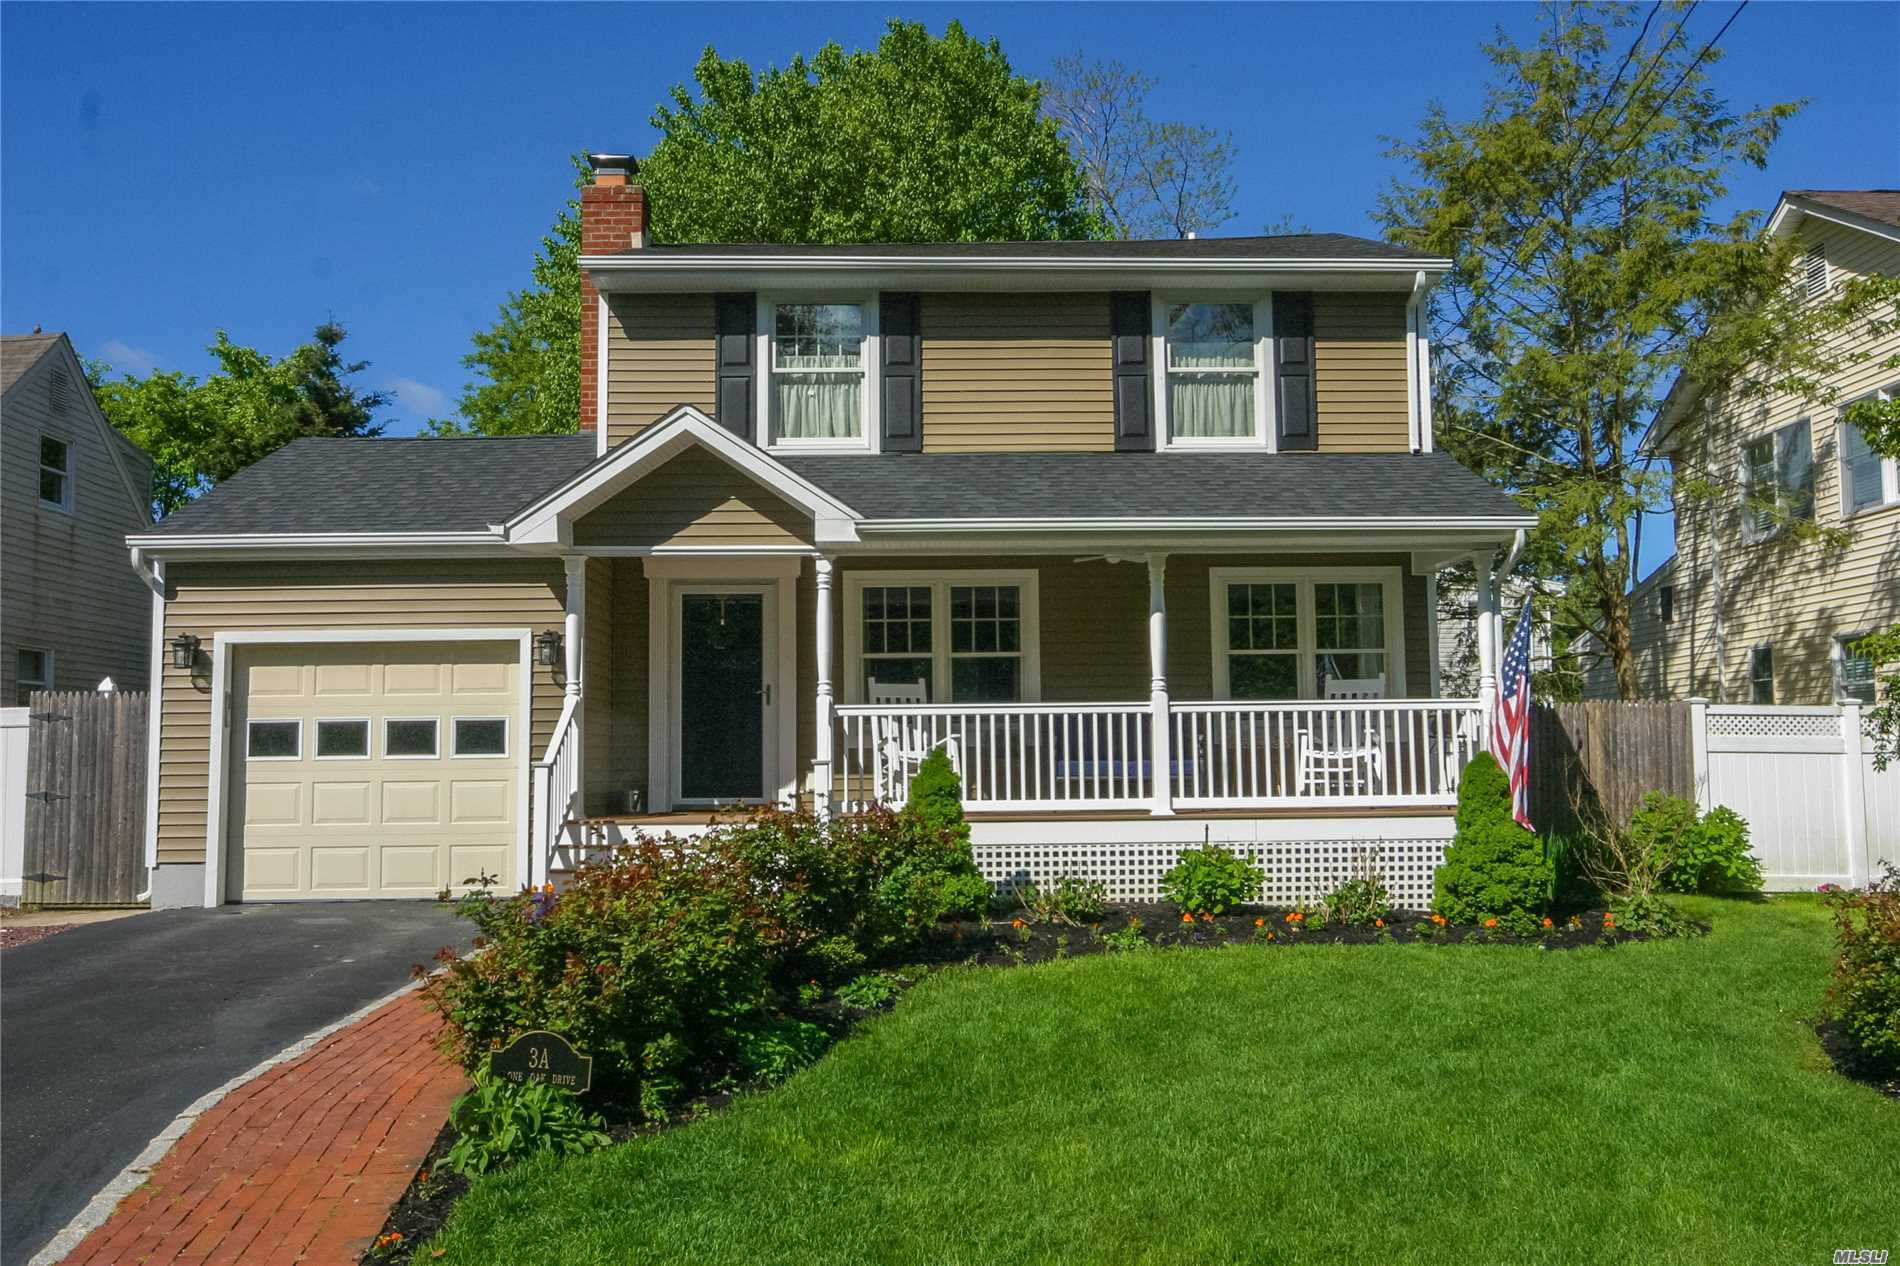 Stunning 3-BD, 2-BA Exp Colonial Renovated 2016! Open Floor Plan, Gleaming Wood Flrs, Andersens, Radiant Heating. Gorgeous Alder/Granite Kitchen w/Prof Grade SS Appliances, gas cooking, farm sink & Center Island. Pantry w/Barn doors. Living Rm w/Fpl. Beautiful Sunroom w/14' ceilings. Master Bdrm w/Palladium Windows & dual WIC. Luxurious Bth w/walk in shower. 2nd Fl Laundry. Updates galore Incl Siding, Roof, CAC, Gas Boiler/ HW tank, 200 Amp & more! Rocking Chair Front Porch. Fenced Yard w/patio.